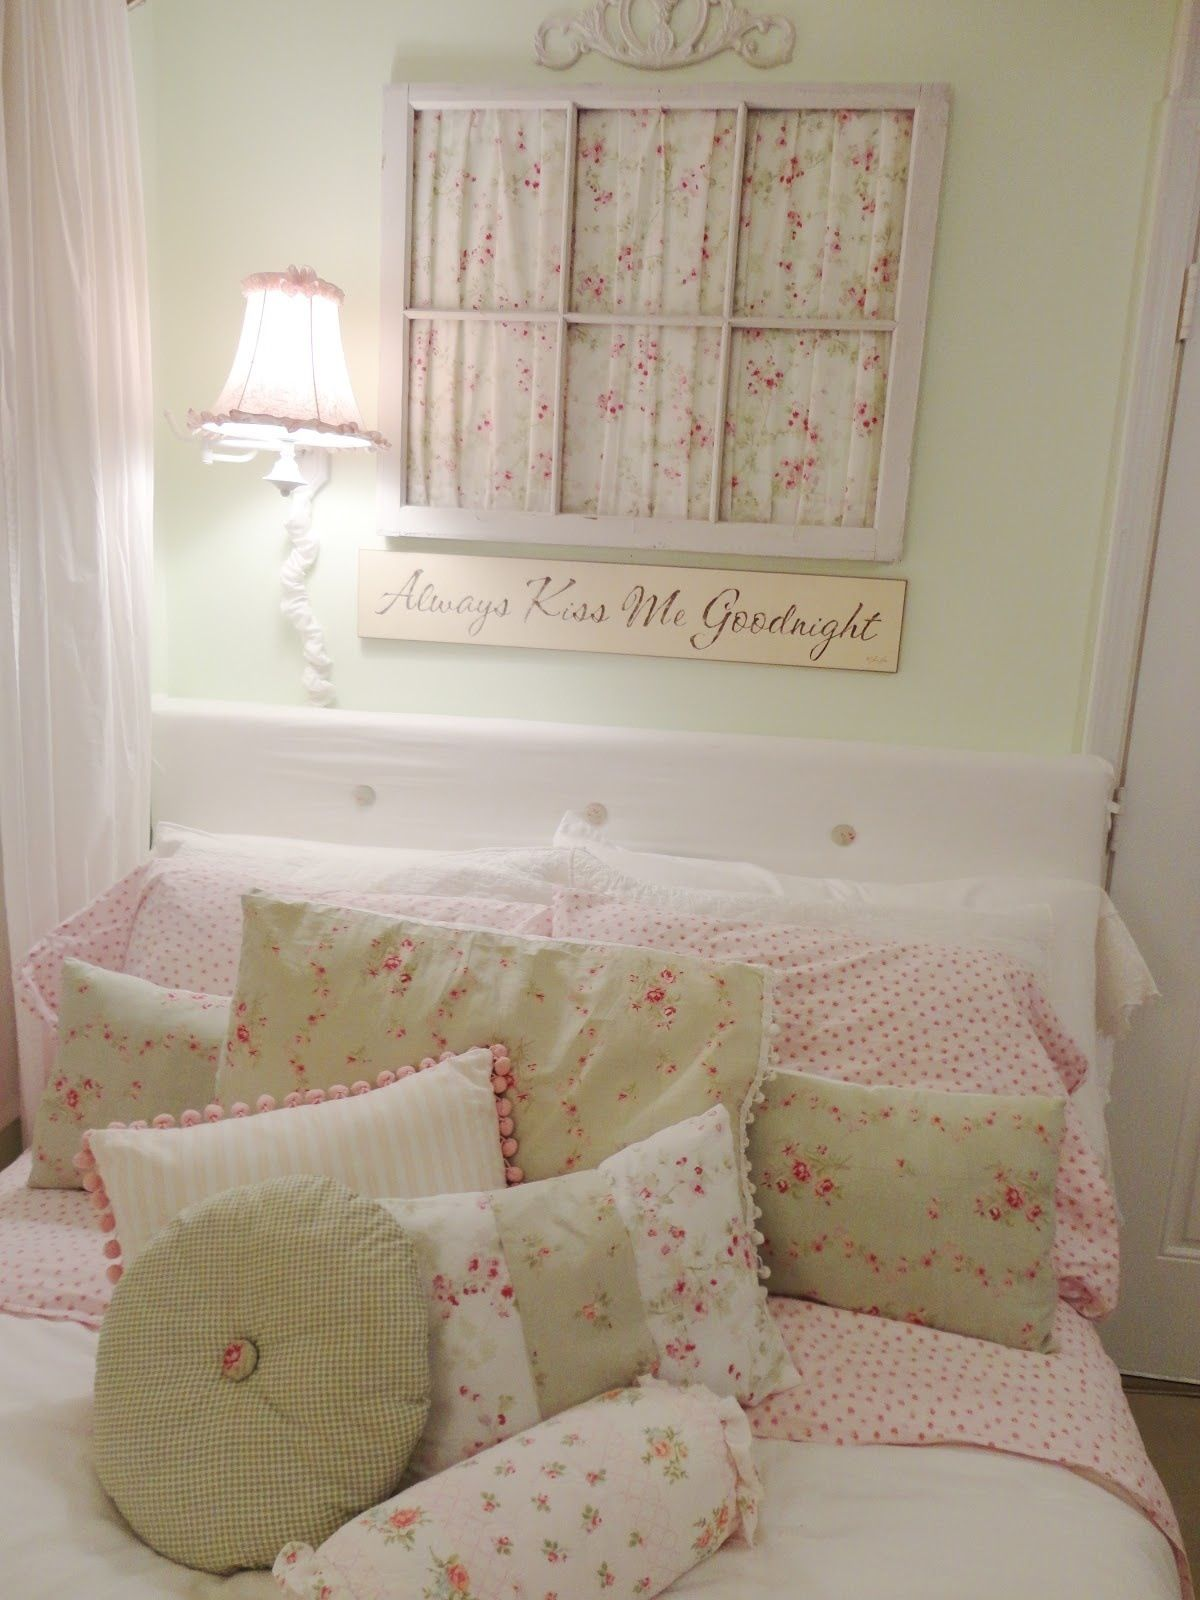 Window above bed ideas  shabby chic style home tour  shabby chic bedrooms and shabby